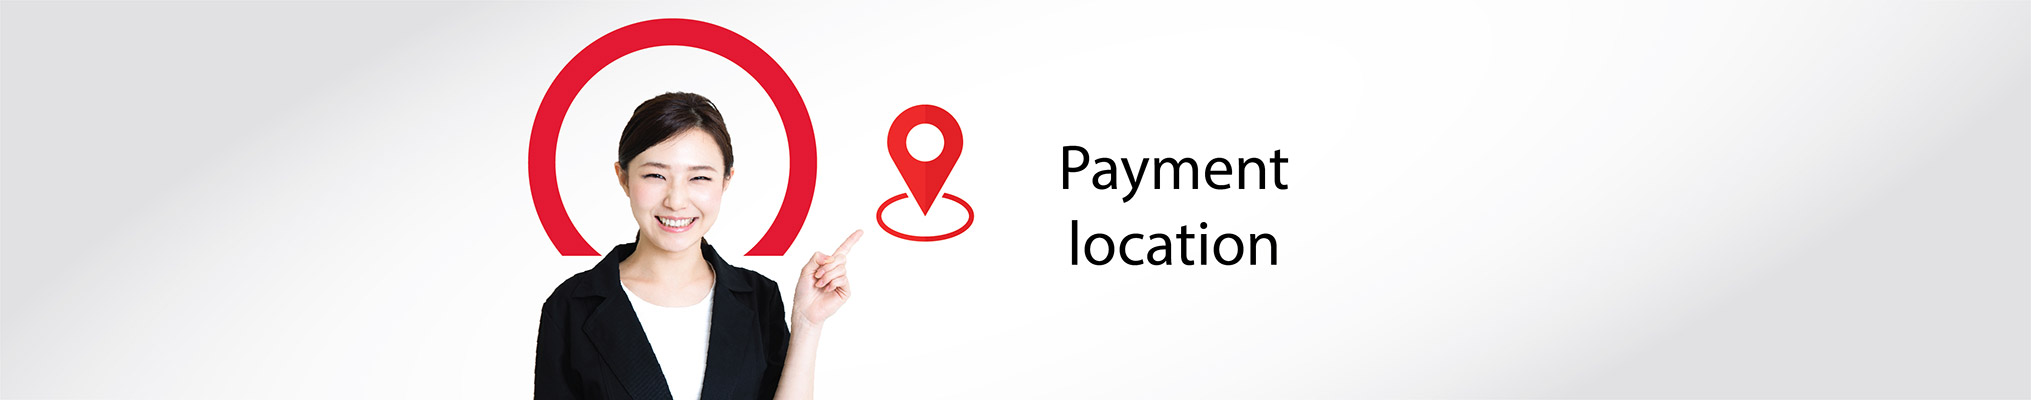 List of payment location